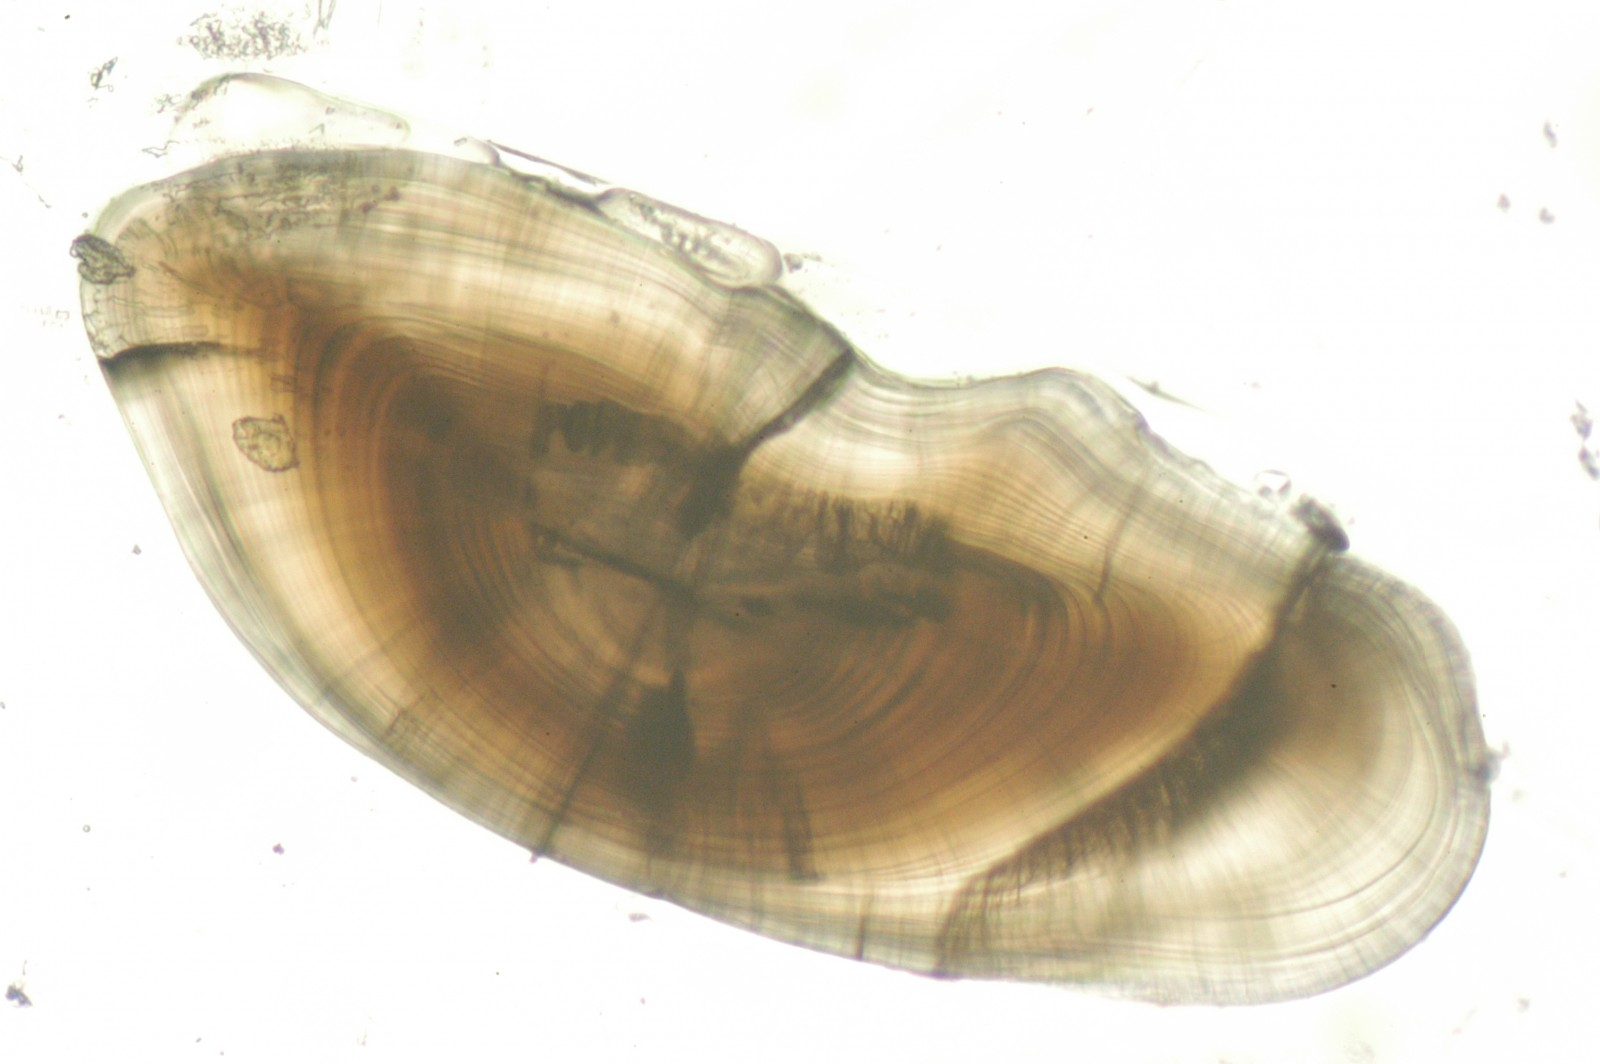 Fish earstone under magnification